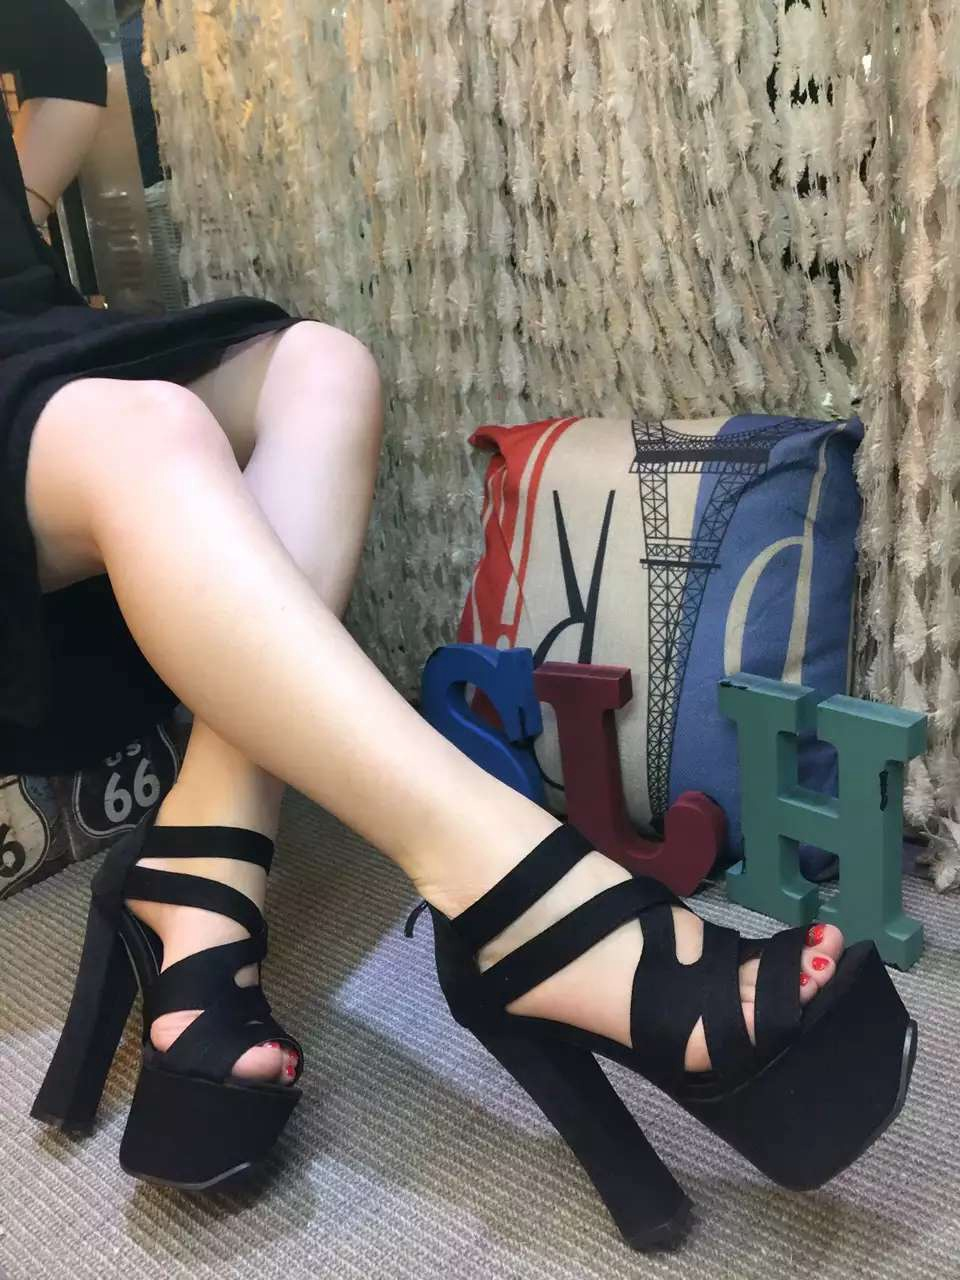 15cm thick with sandals 2016 spring and summer dance T station Hentian superb high-heeled shoes waterproof shoes fish head весна милана 5 со звуком в2203 о